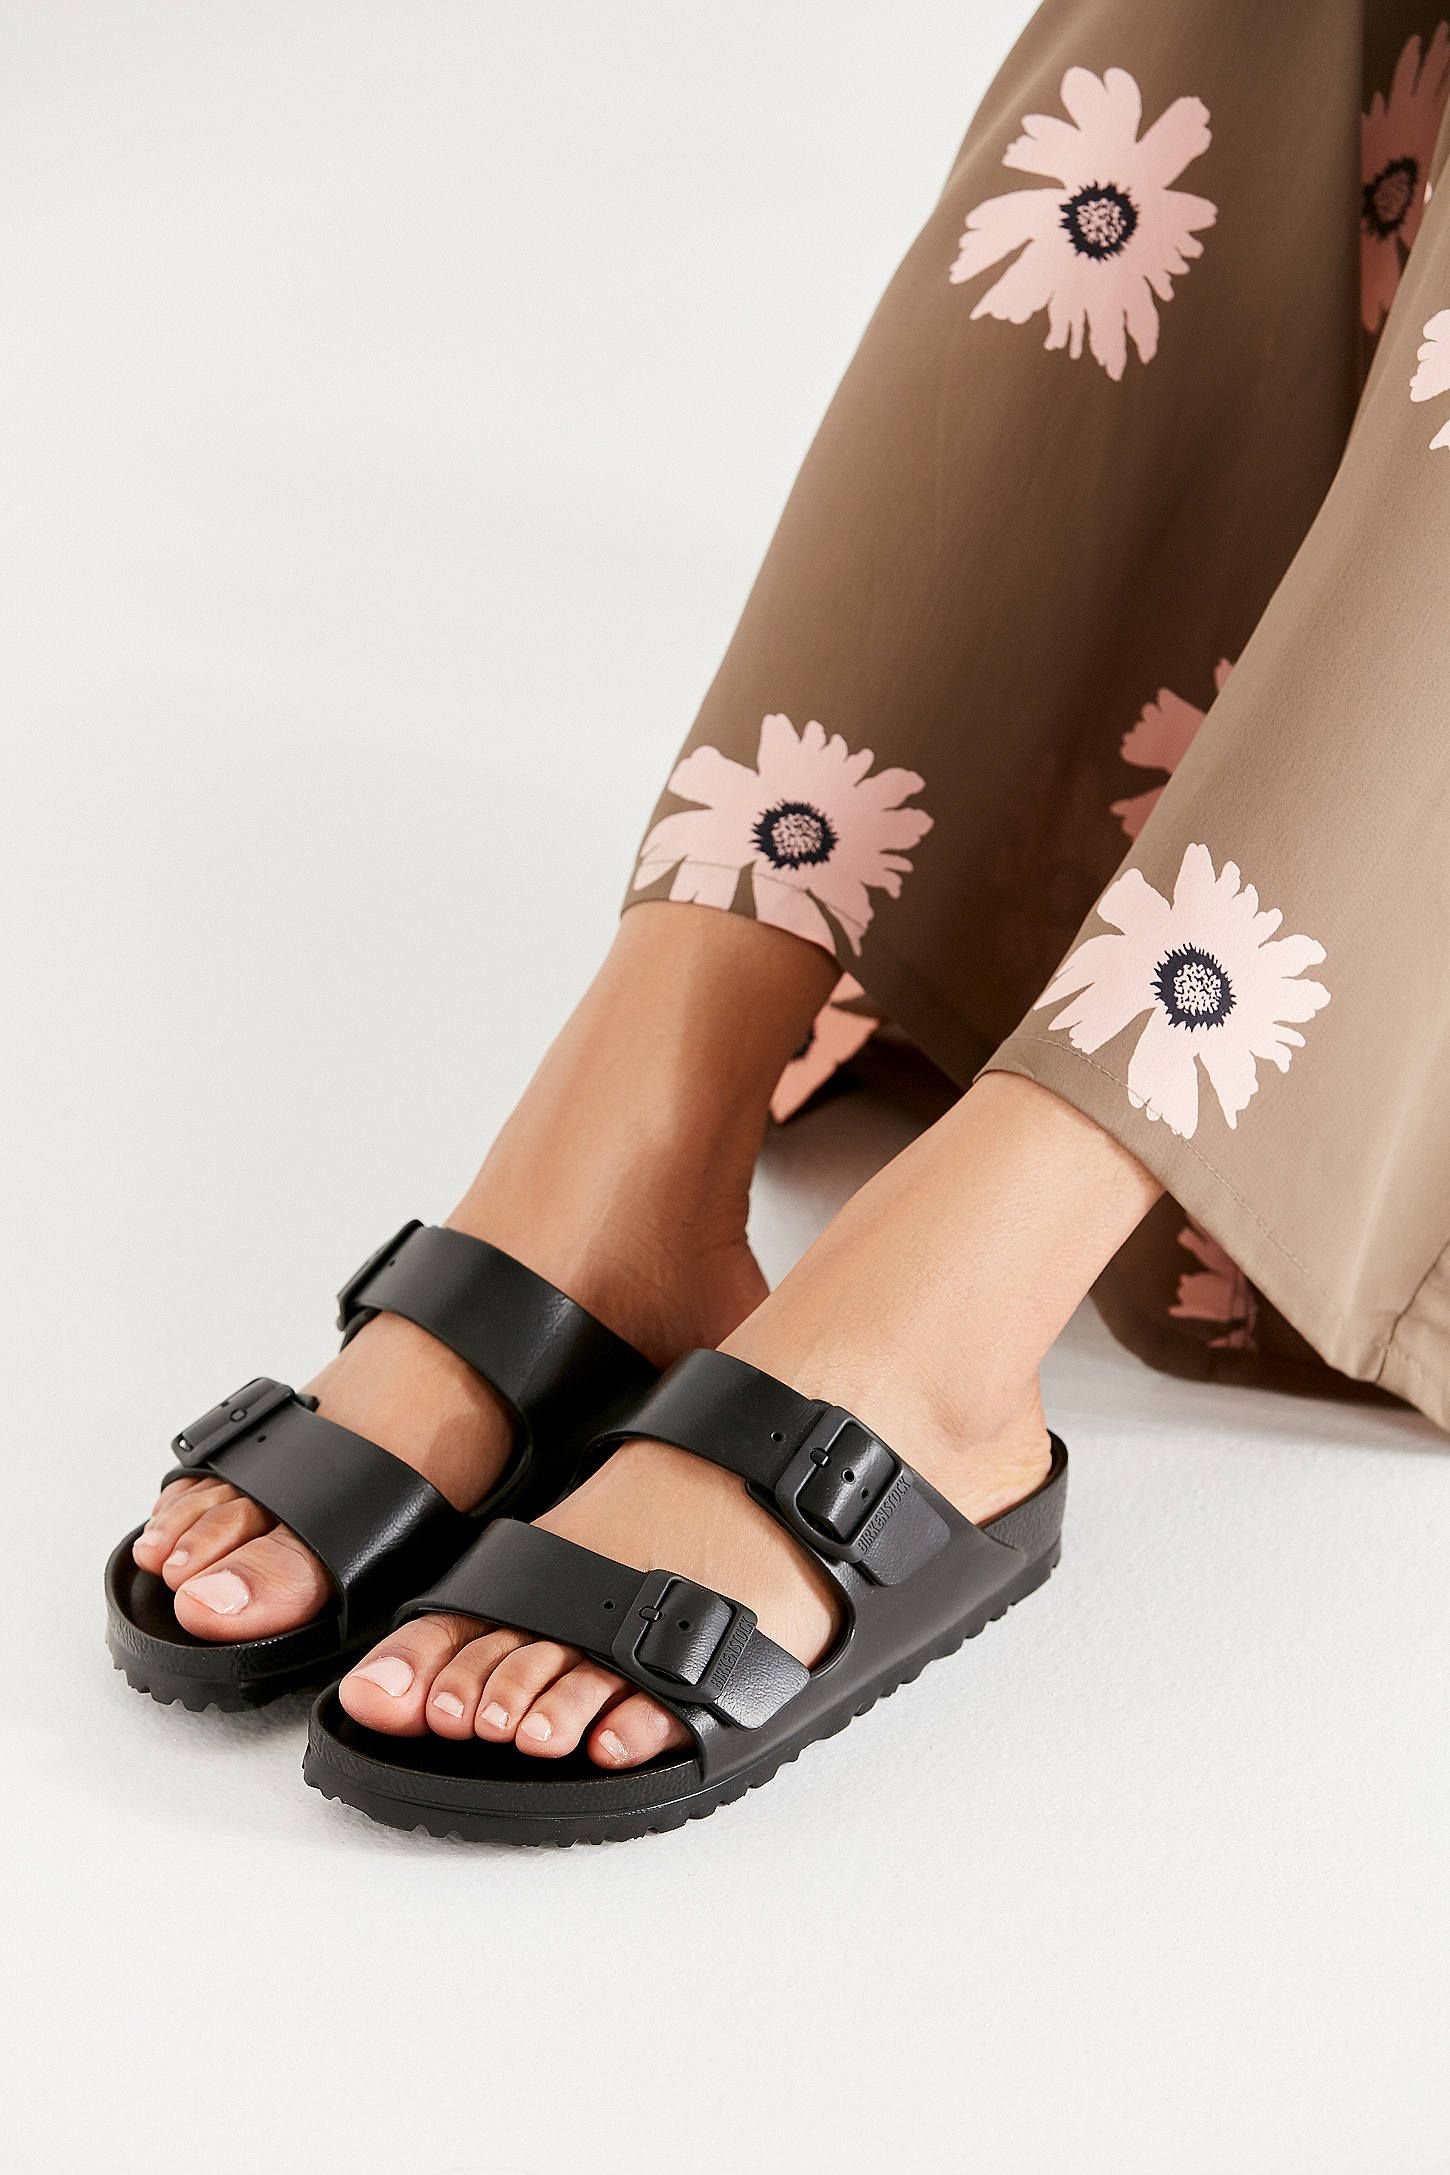 Birkenstock Arizona EVA Sandal | Flip flop shoes